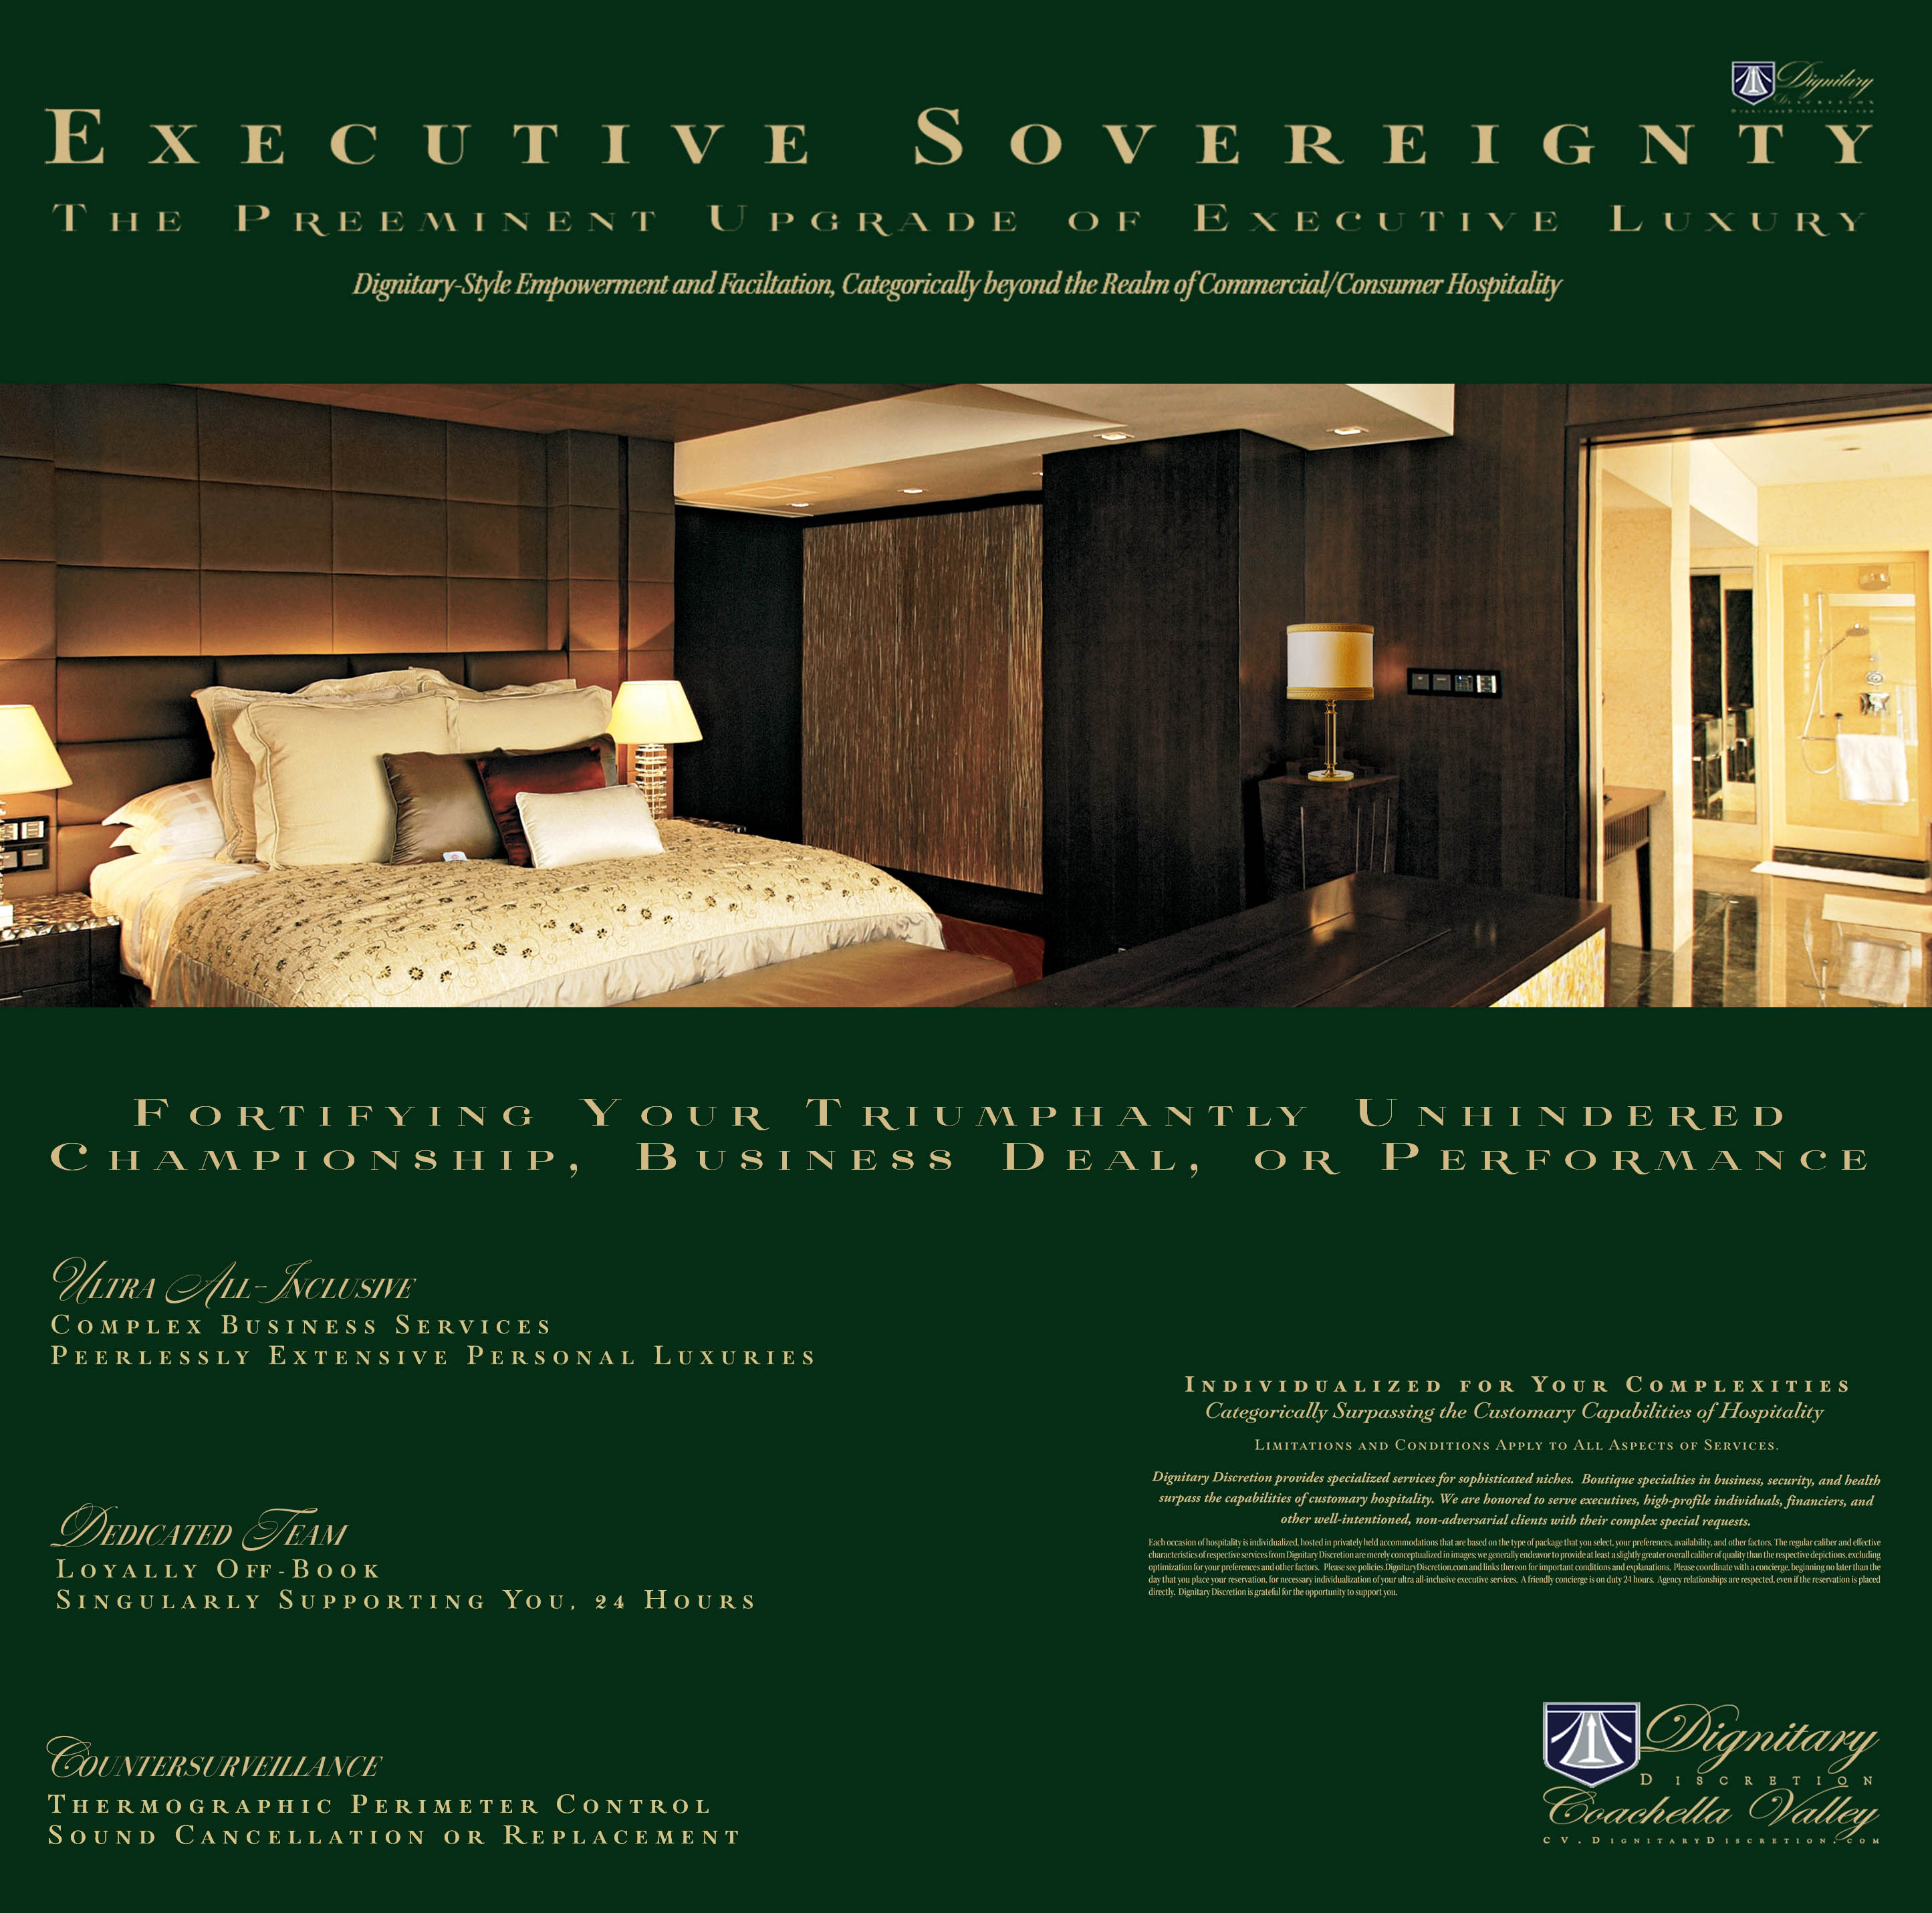 Executive Luxury by Dignitary Discretion